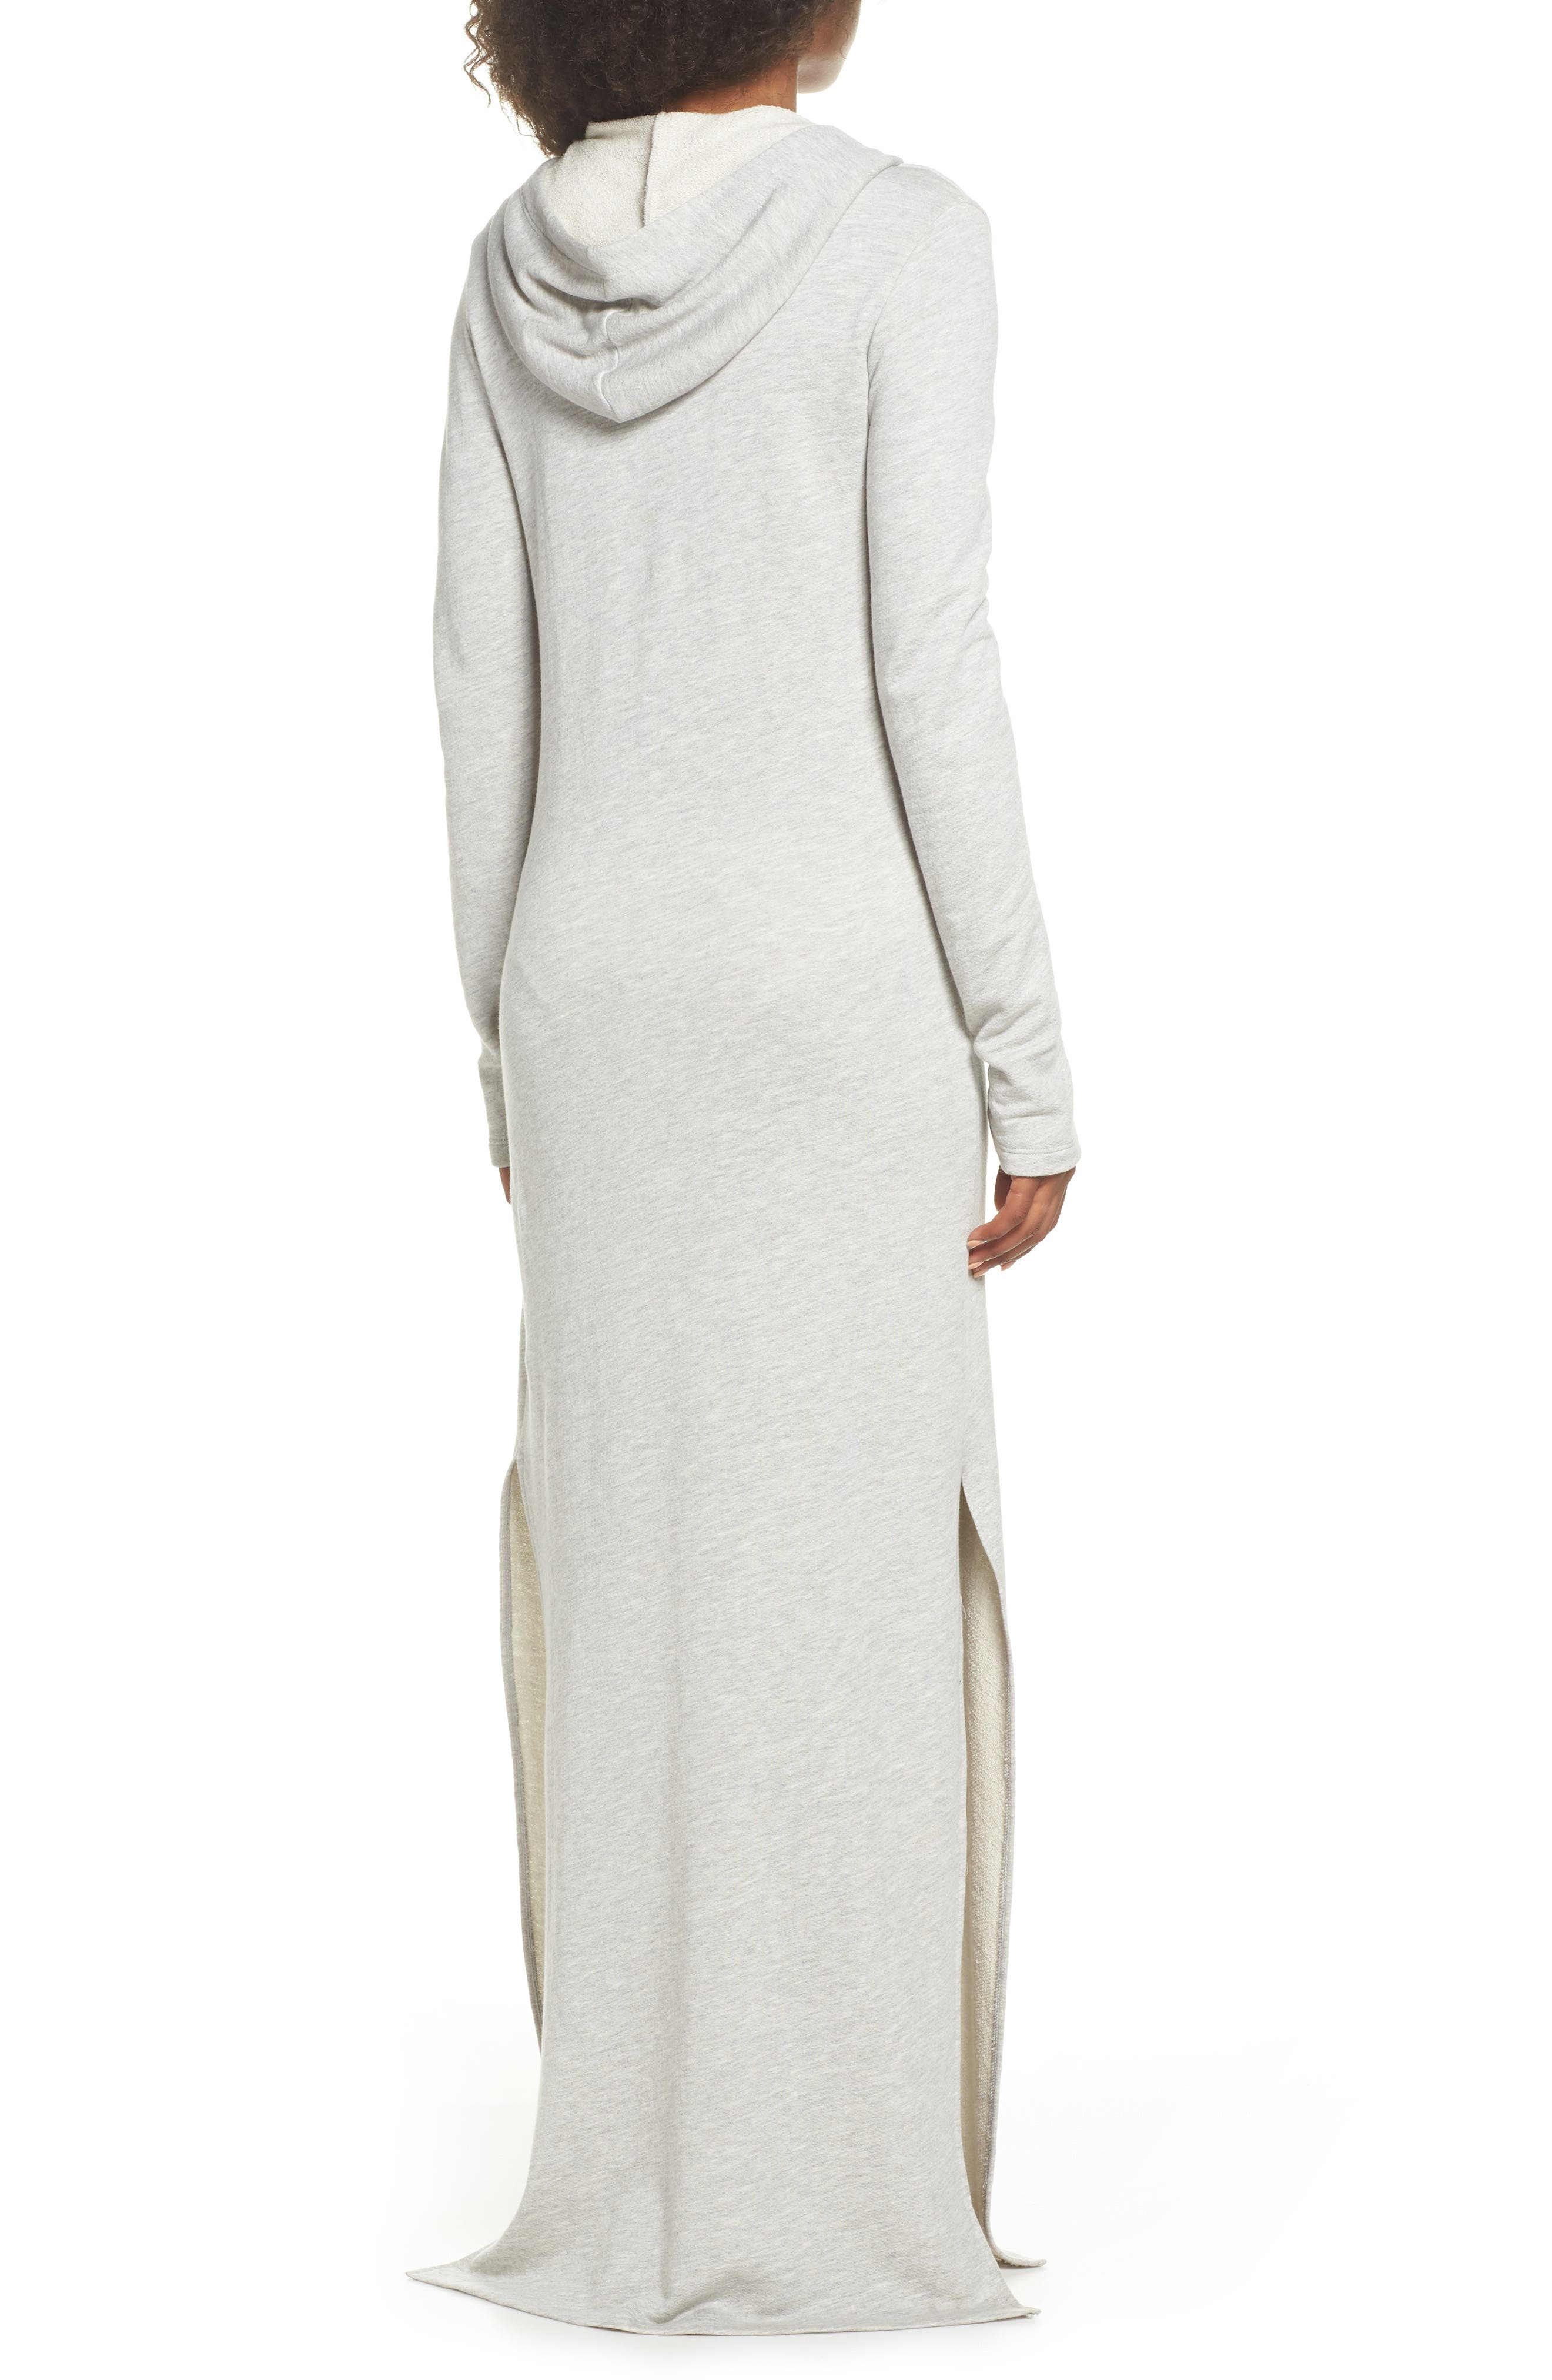 Hooded Terry Nightgown,                             Alternate thumbnail 2, color,                             Grey Terry